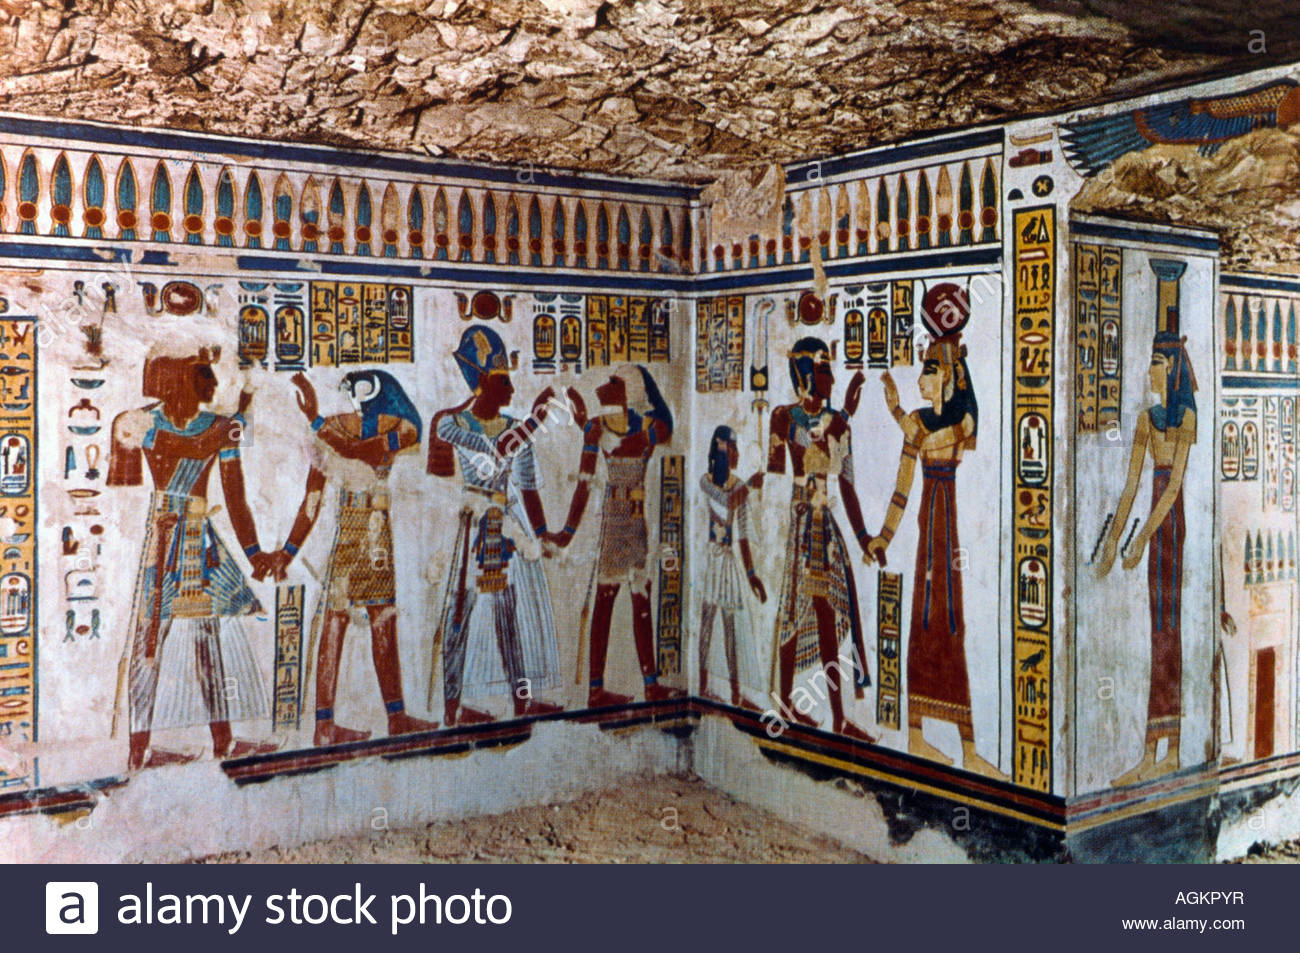 Tombs of Menna, Nakht & Amenemope Luxor, Luxor Egypt Tomb Of Menna Tombs Of The Nobles Stock Photo, Royalty ...